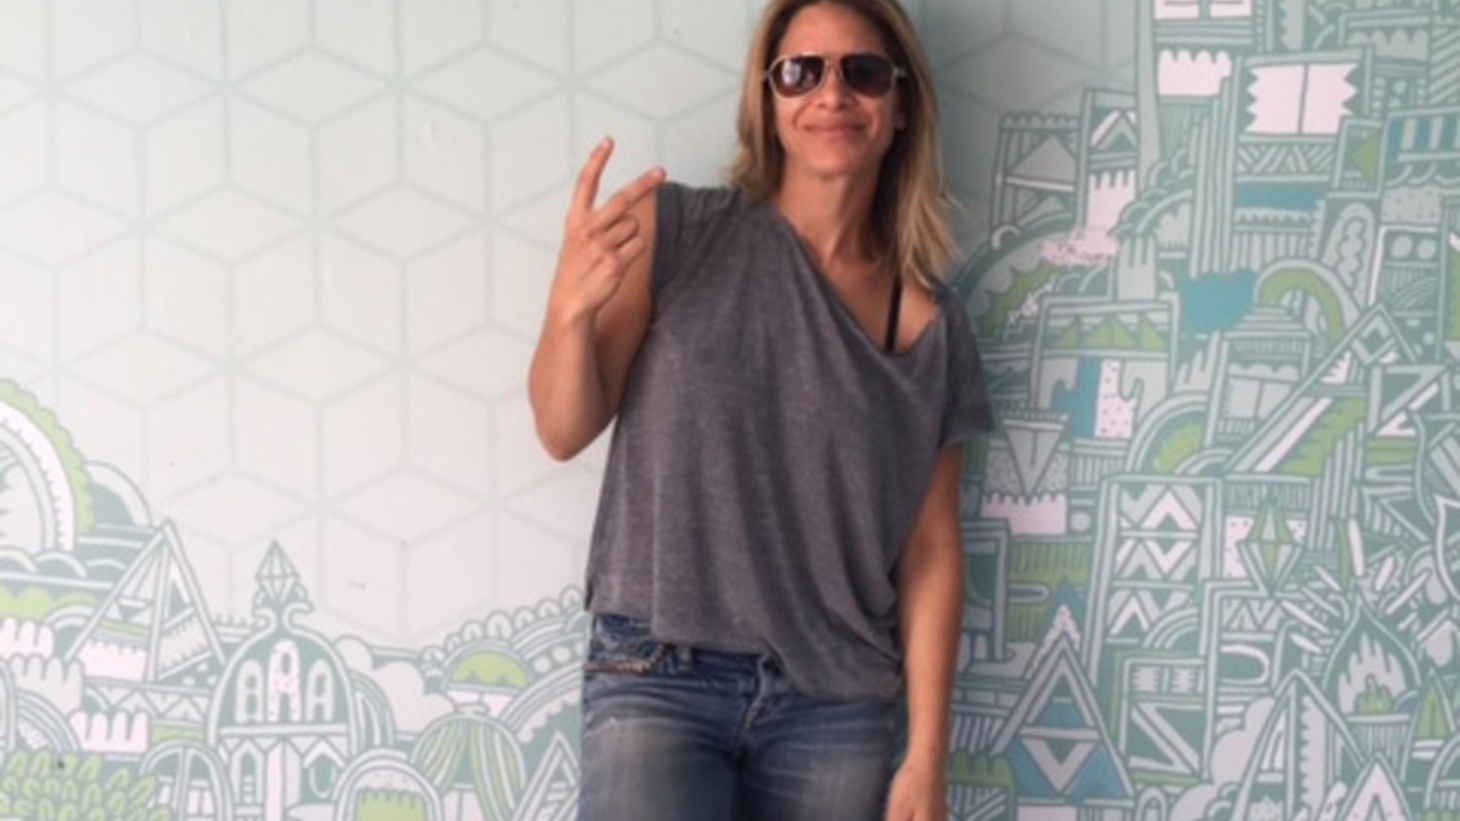 """Jillian Michaels is a fitness guru who appeared on the NBC show The Biggest Loser for a decade. Her Guest DJ set includes a track that brings out her inner fighter, a """"cheesy pop song"""" she uses for work out motivation and a dedication to her haters."""